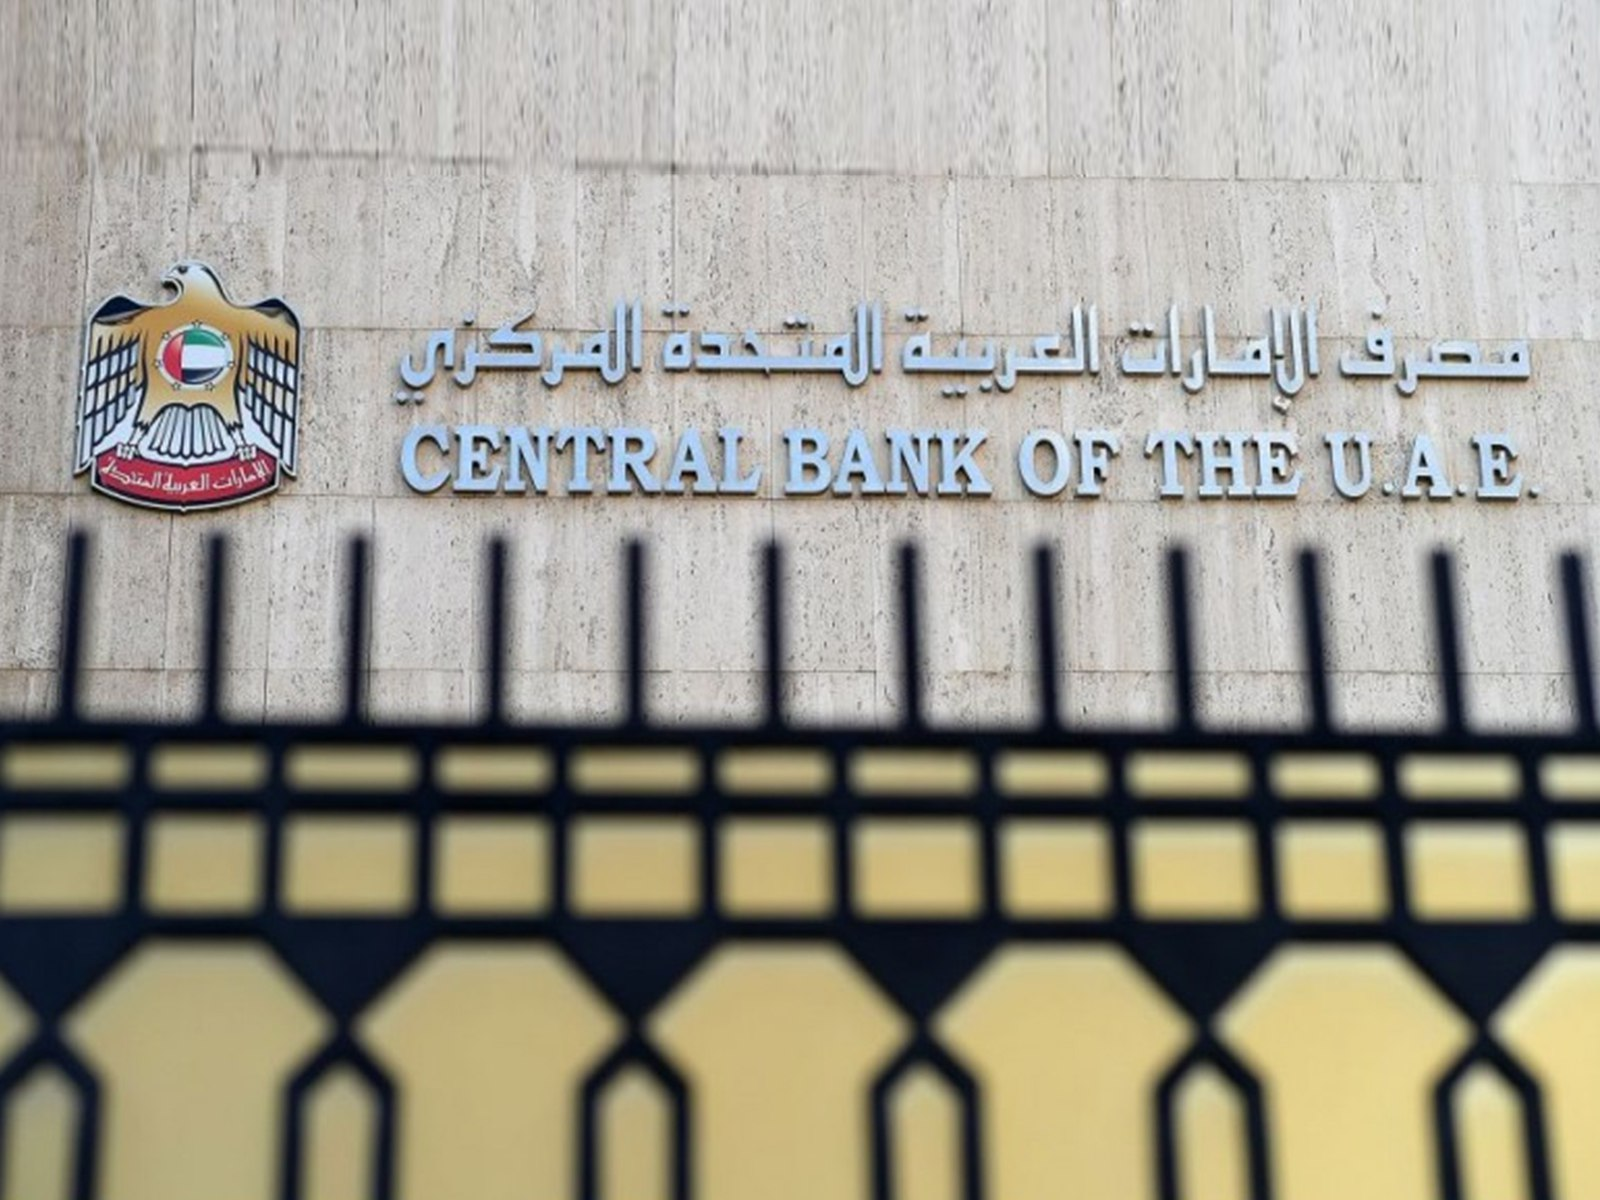 Foreign assets up to AED392.4 billion by end of Q1 2021 - UAE Central Bank